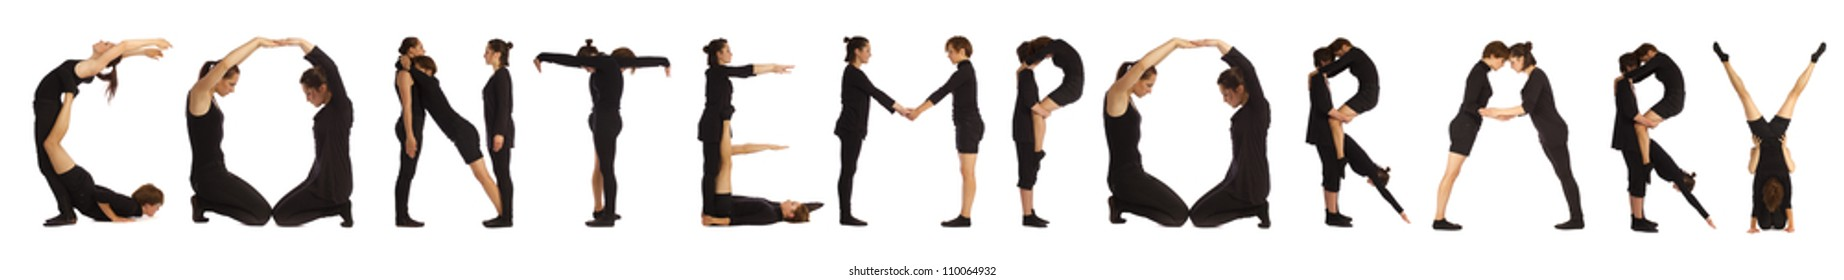 Black dressed people forming CONTEMPORARY word over white